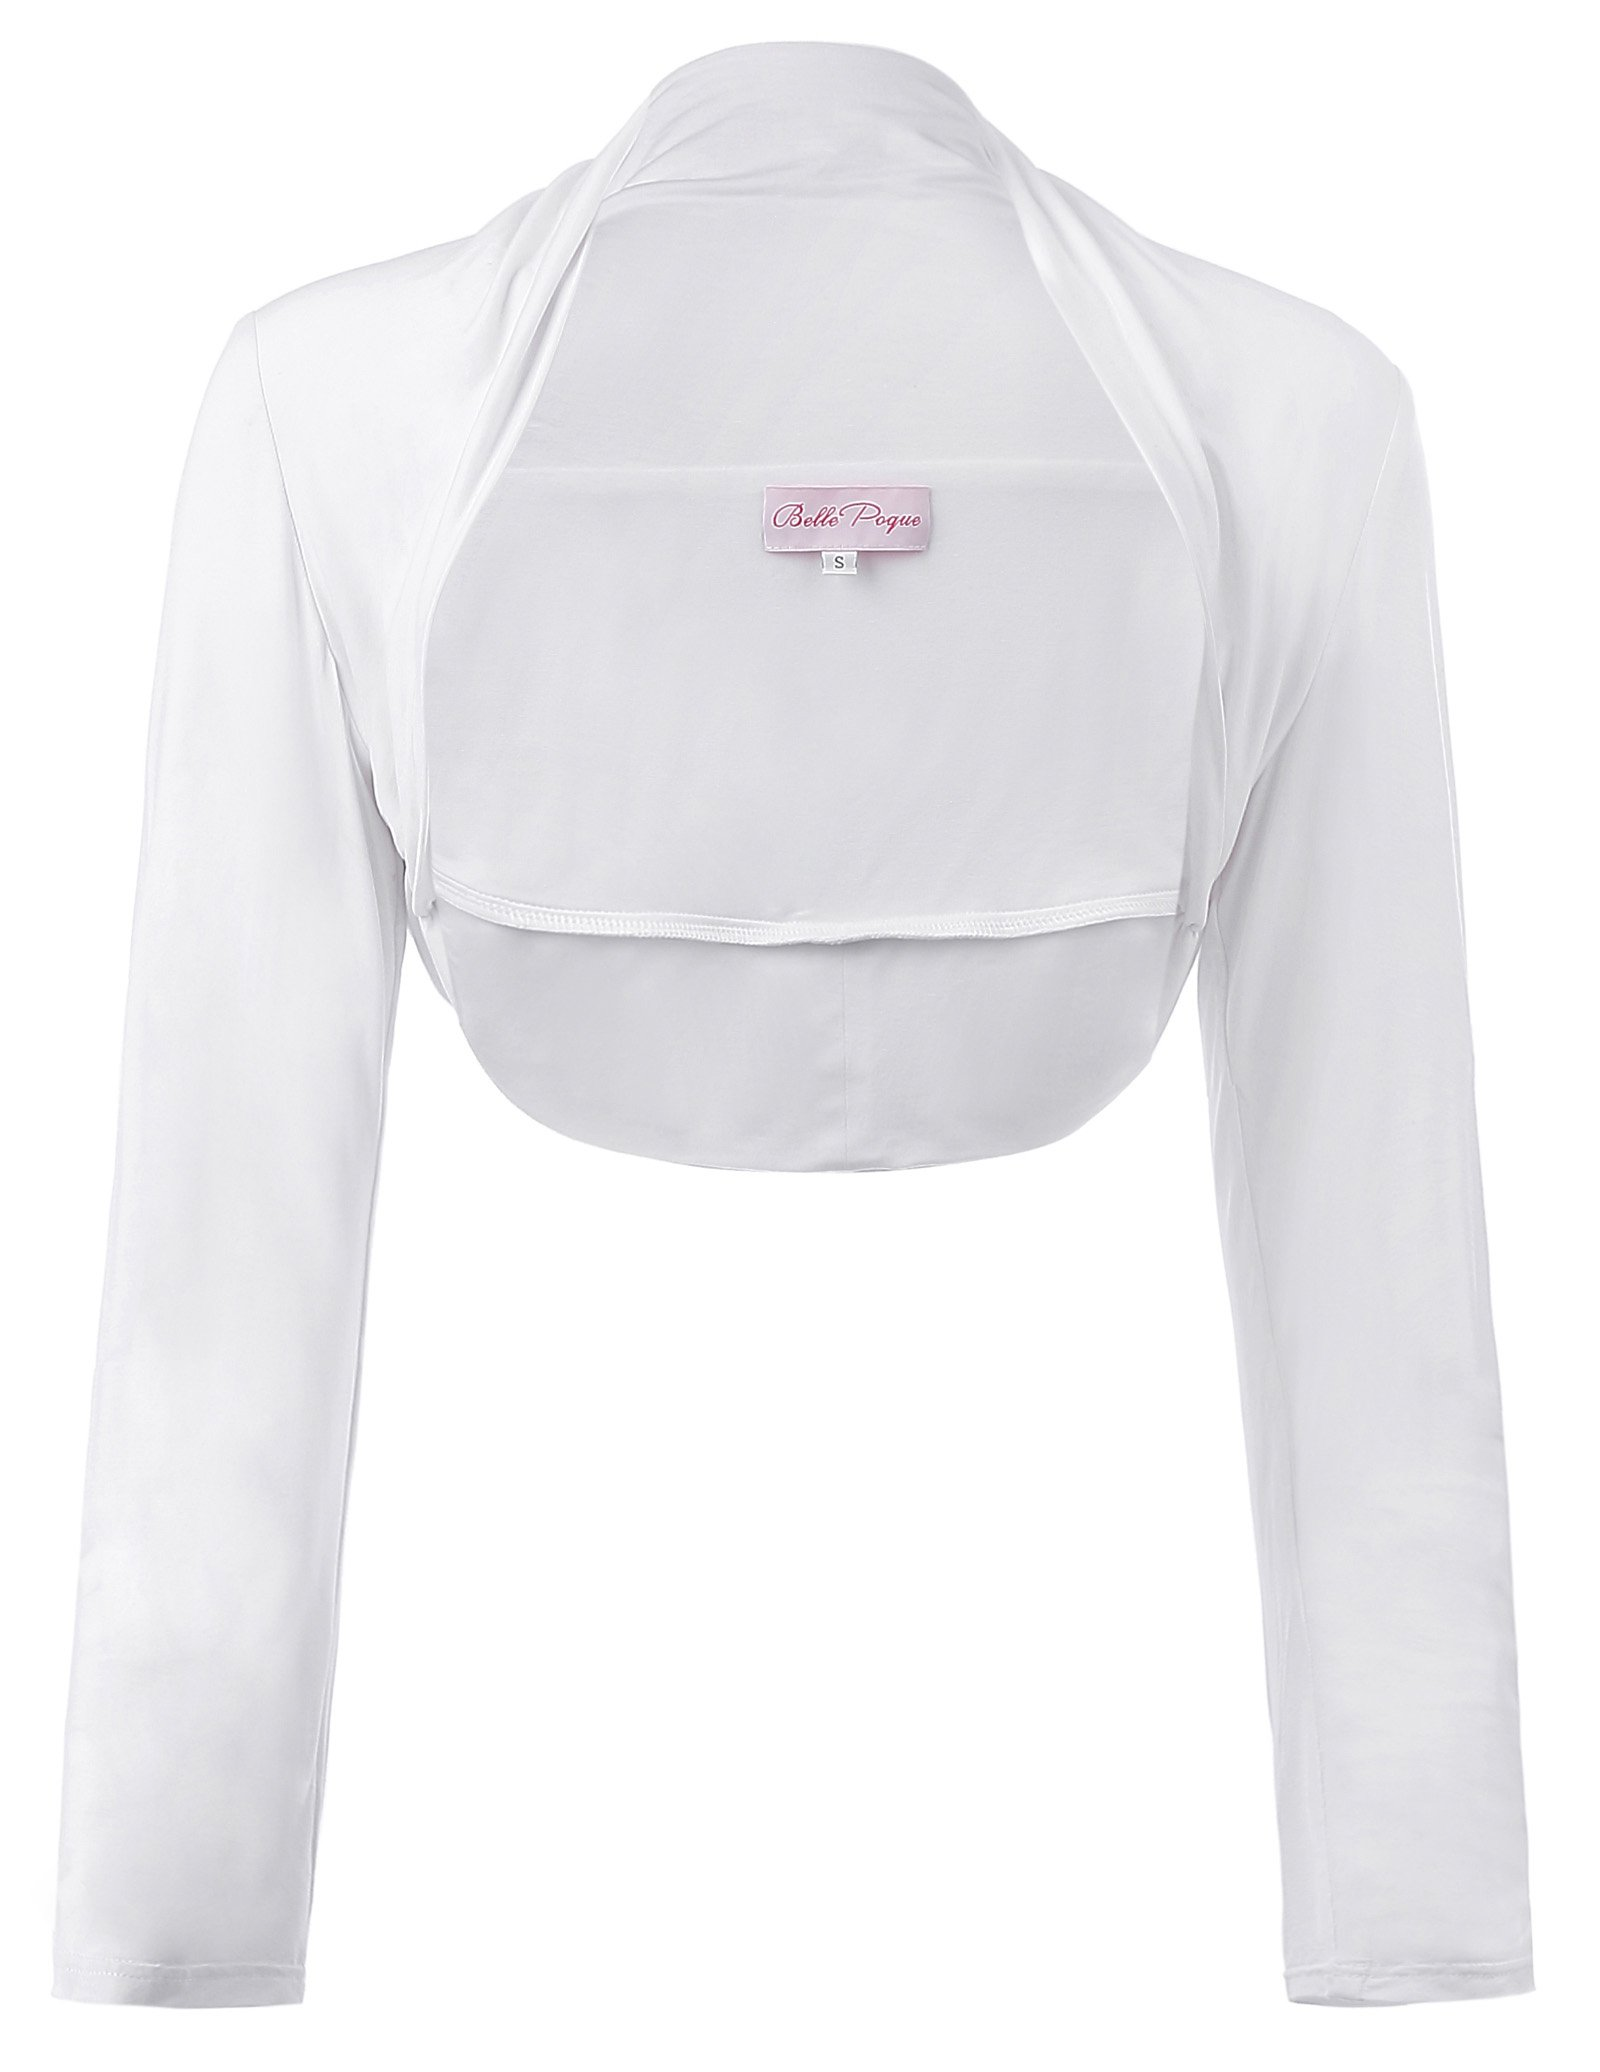 Womens Bolero Jacket With Long Sleeve Open Front White, Small